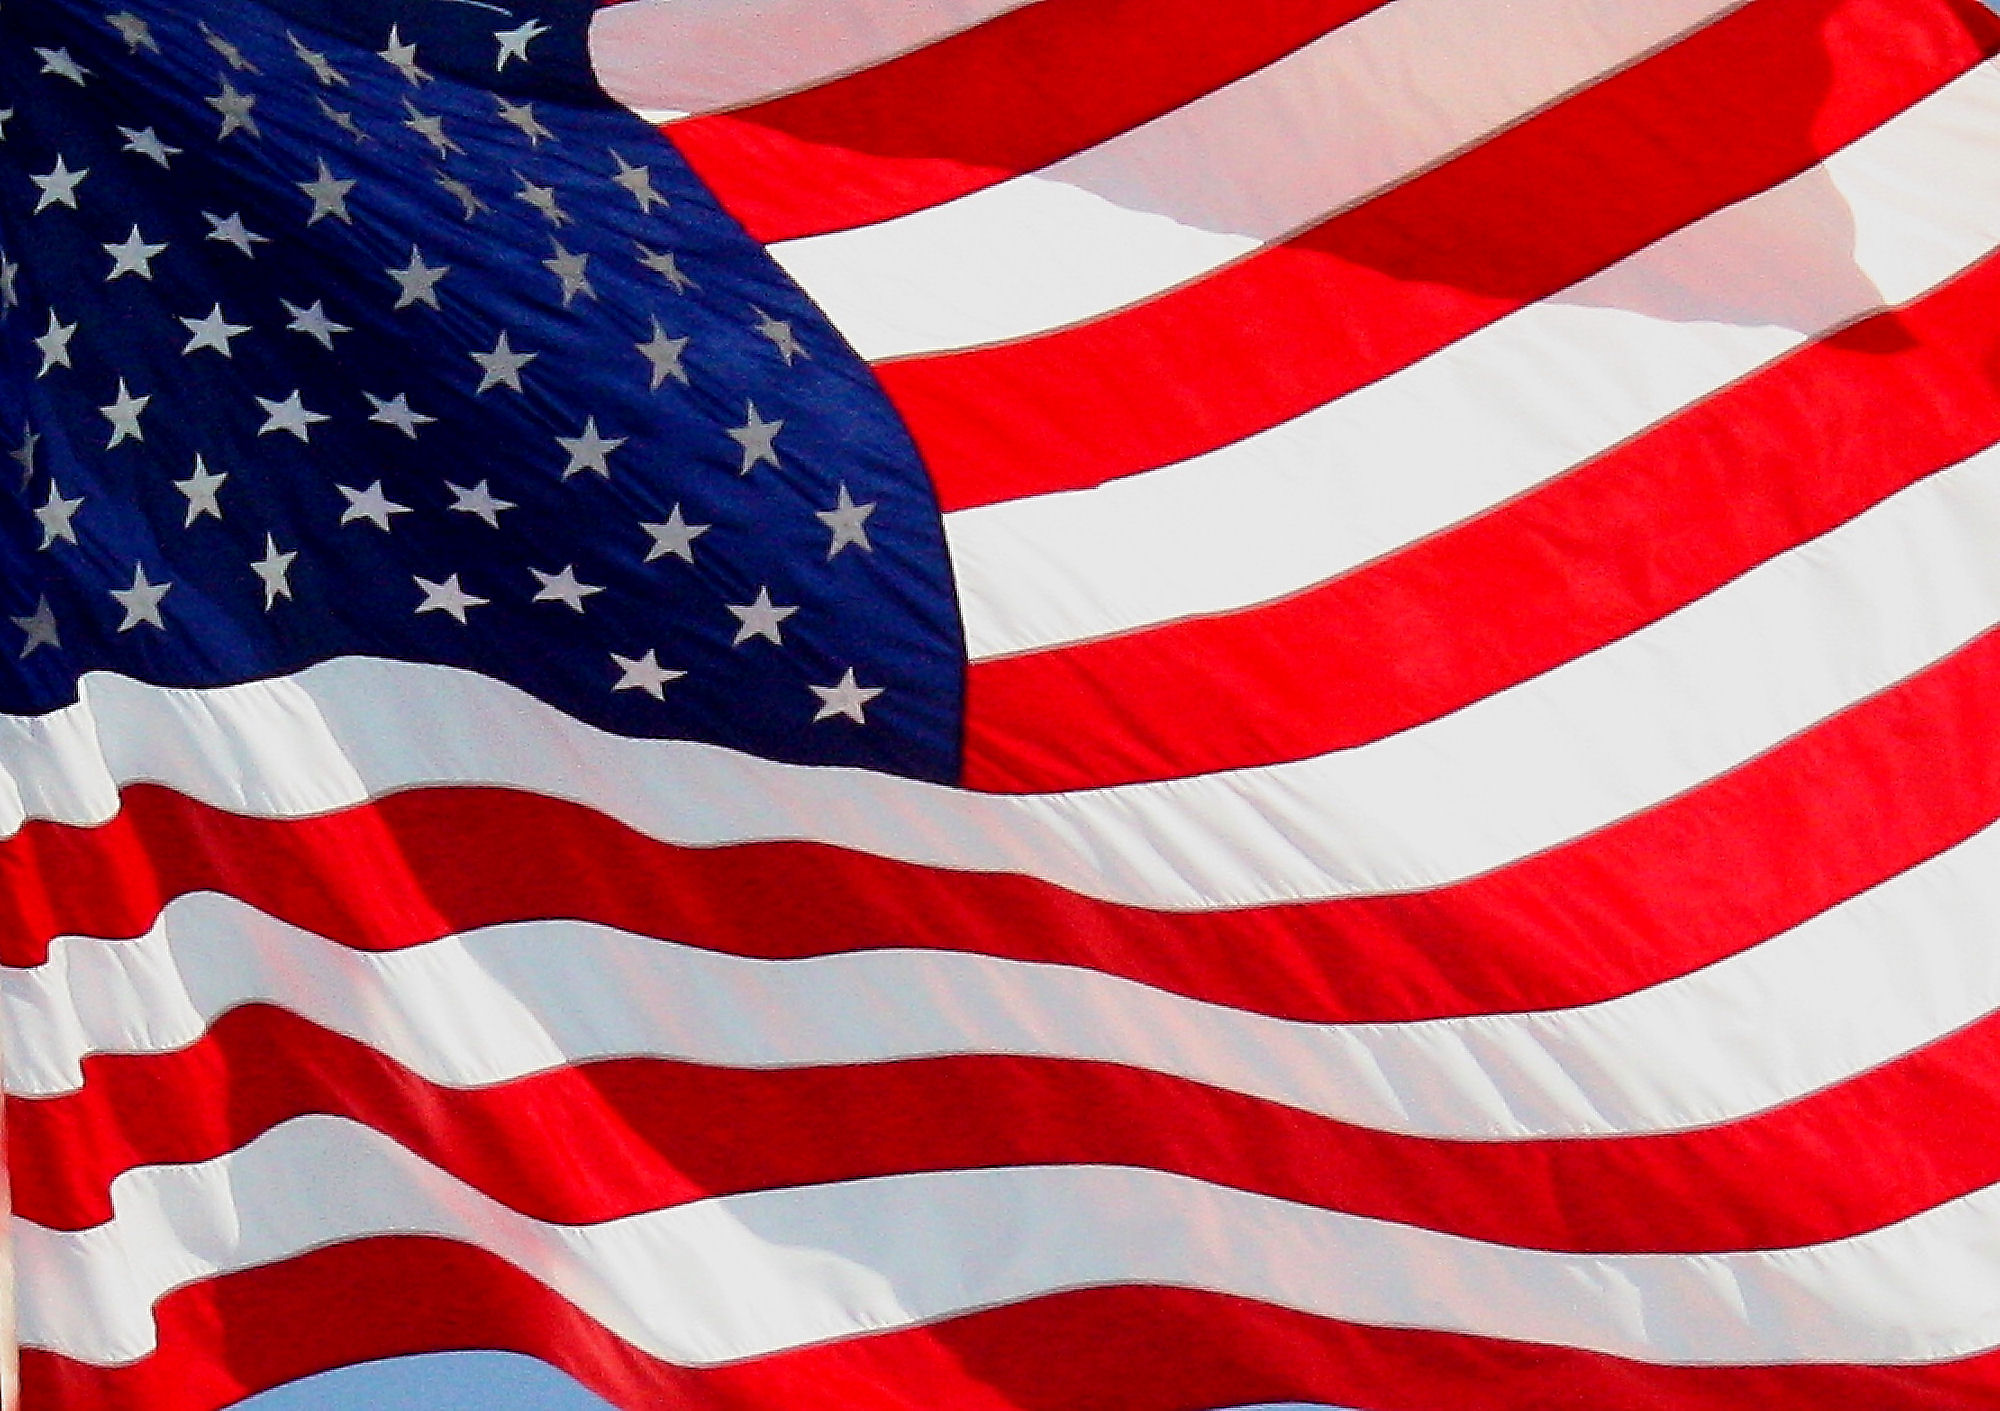 USA american flag background   Puckett Pages 2000x1411